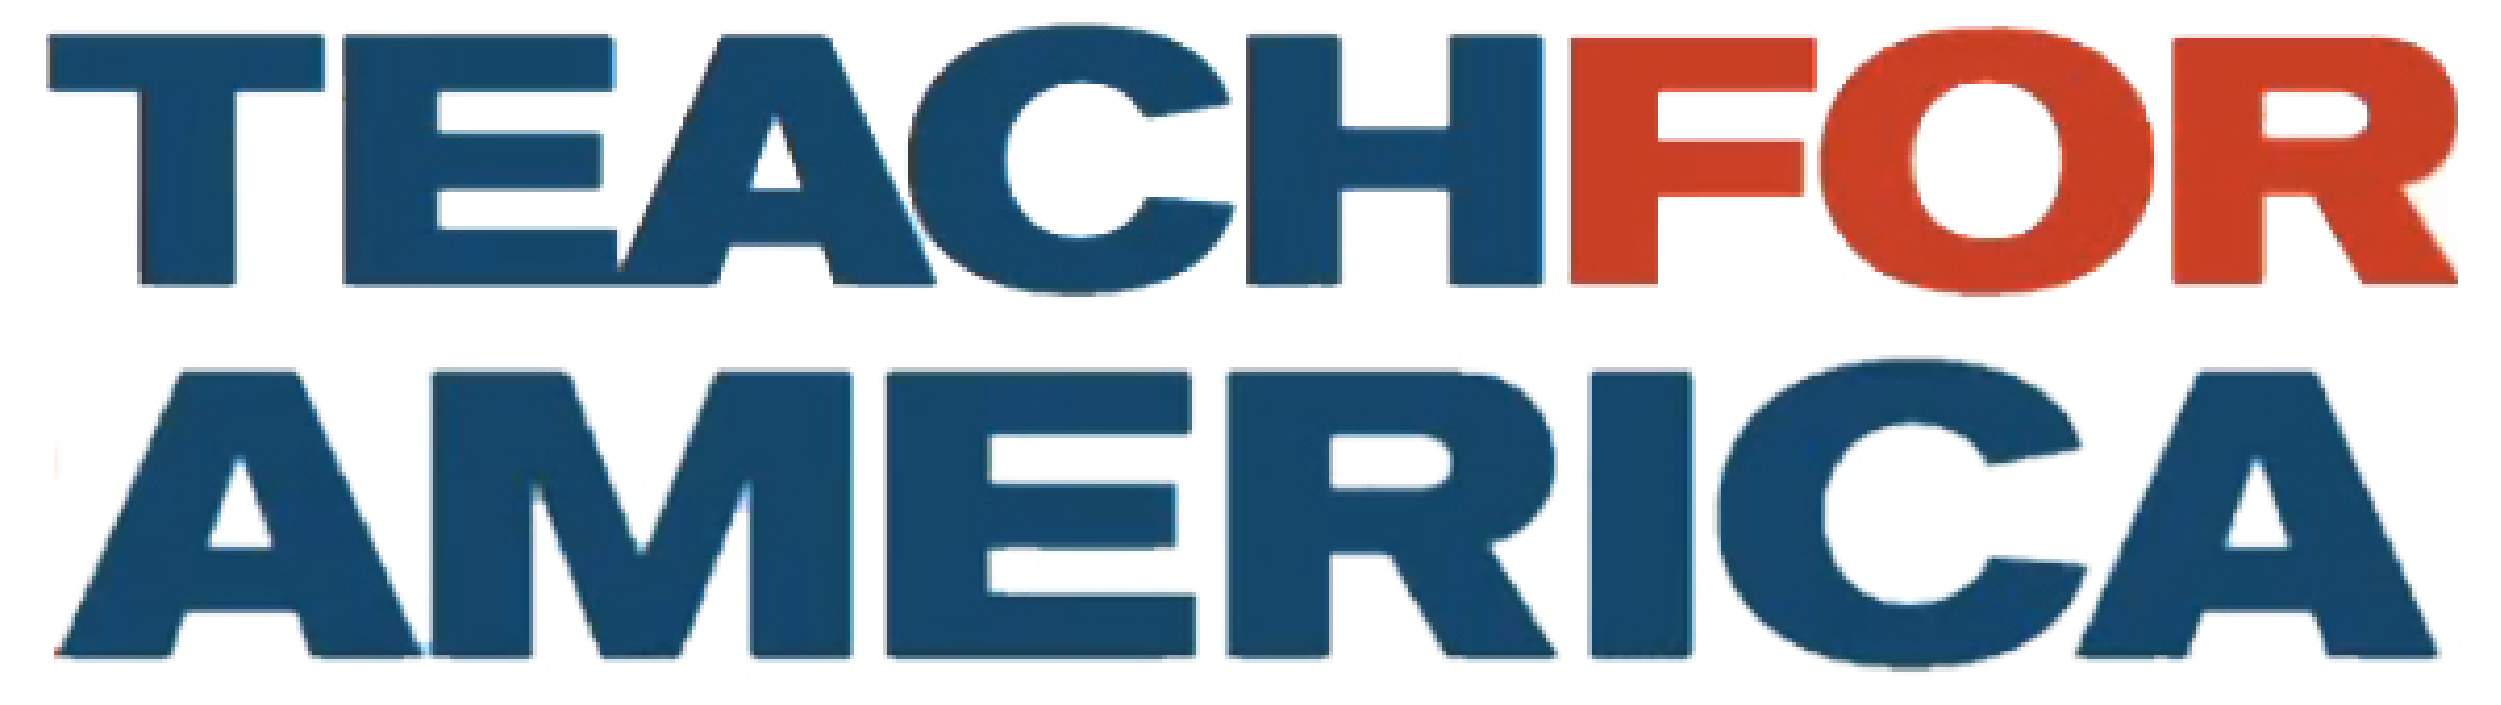 teach-for-america-logo-01